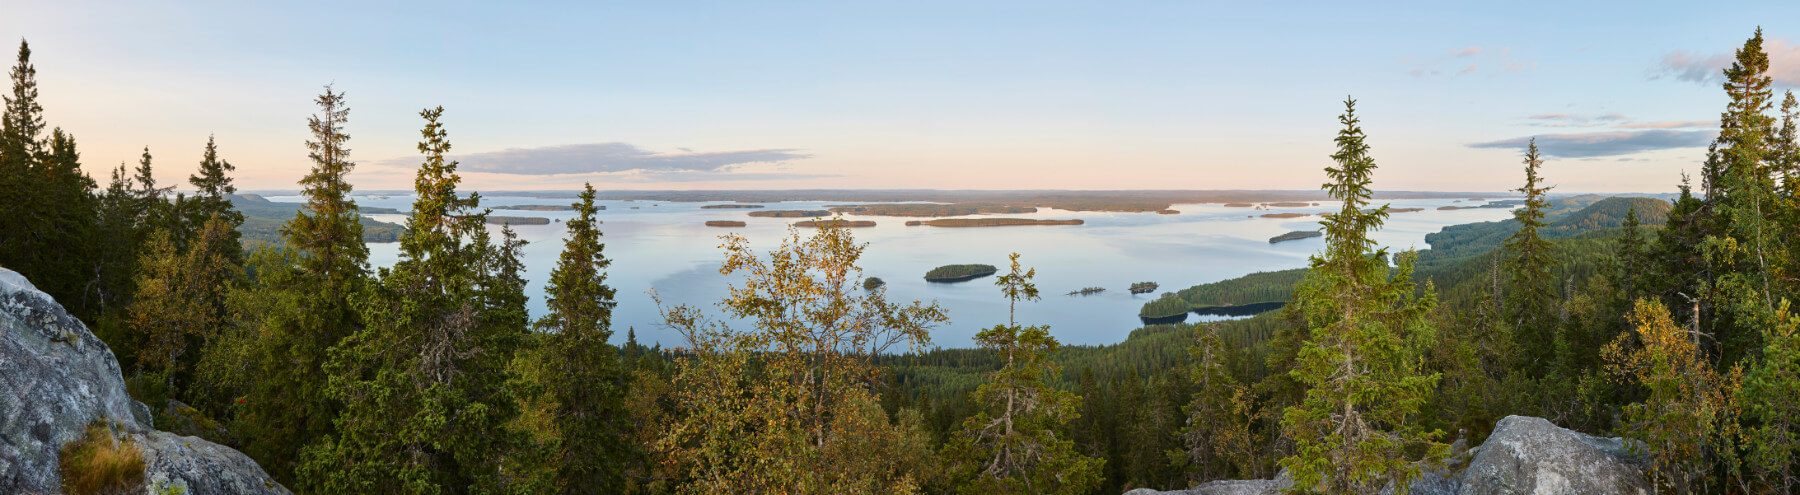 panoramic-landscape-view-koli-national-park-PWTV22U